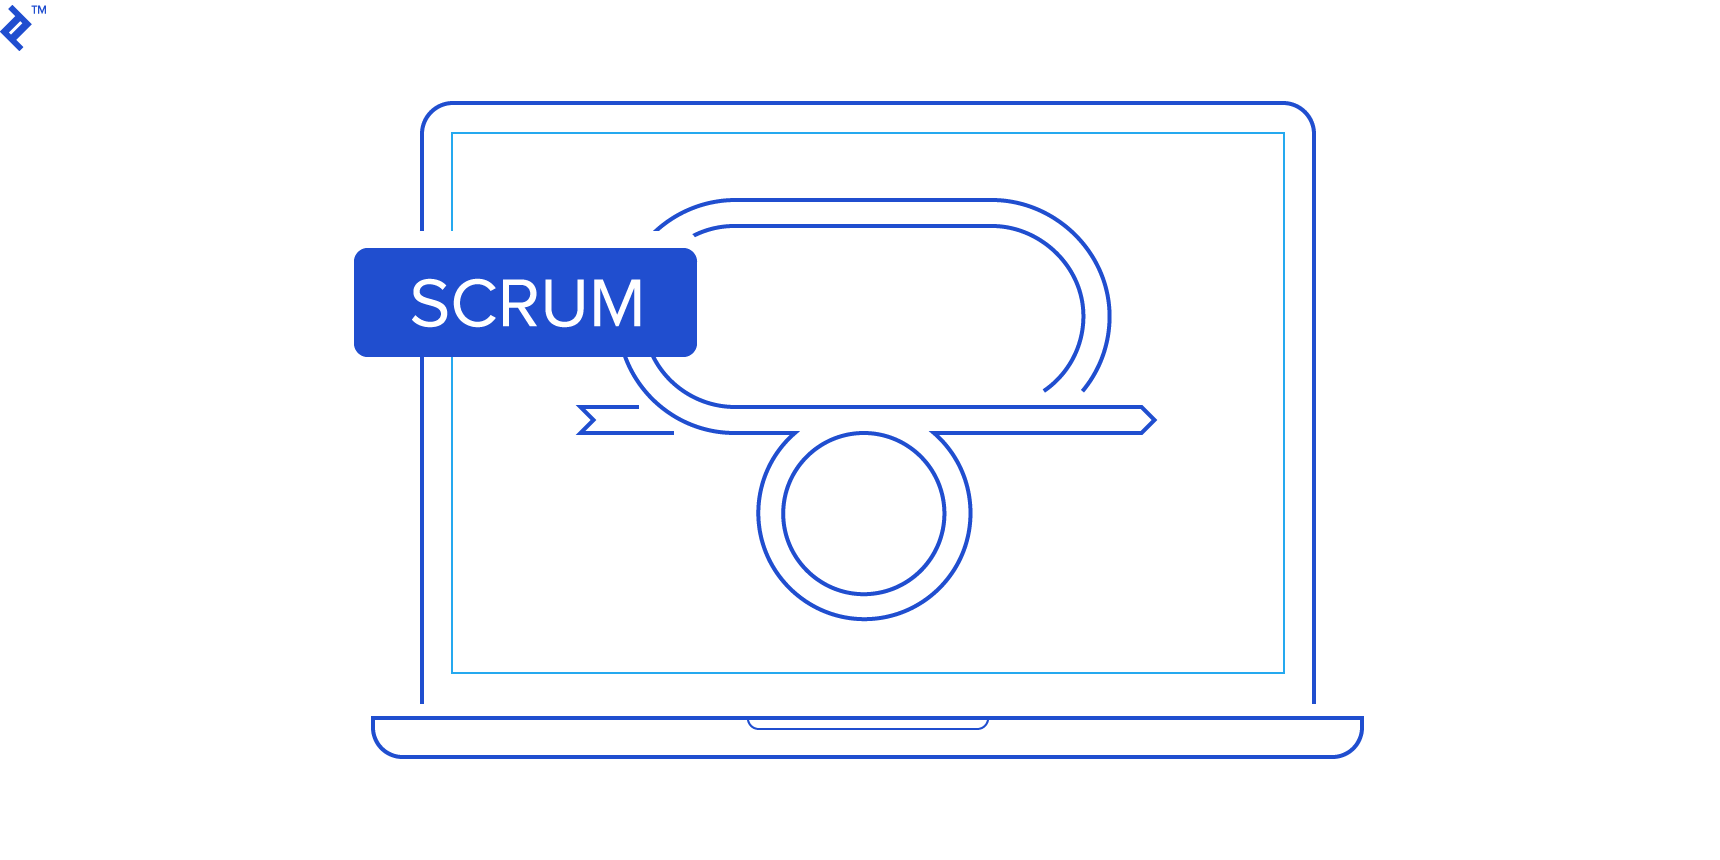 The basic Scrum framework.